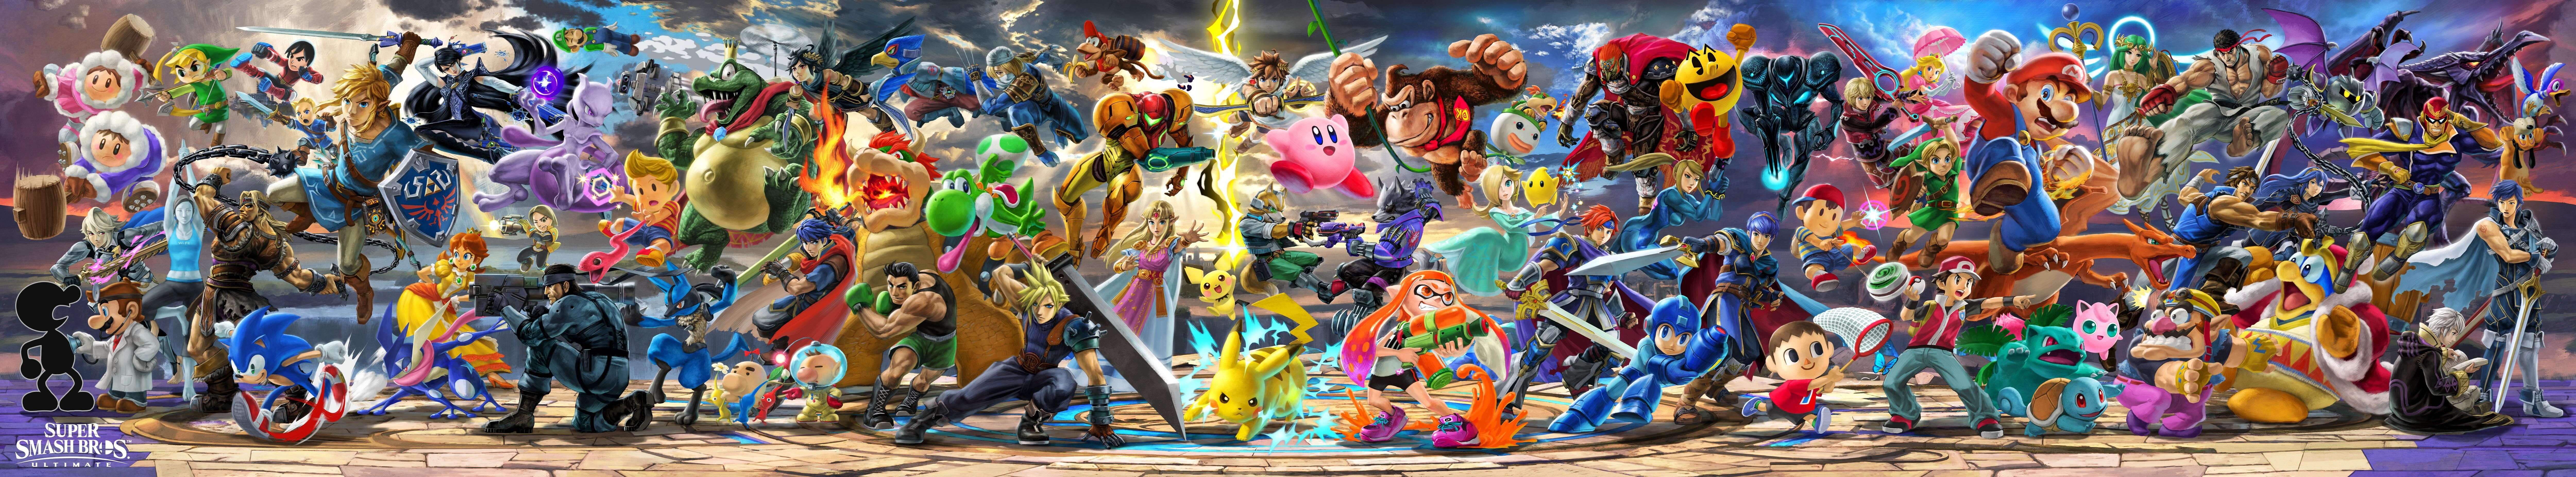 Hd Rendering Of Super Smash Bros Ultimate Mural Including The New Fighters From Smashs Subreddit How Many More Smash Bros Super Smash Brothers Smash Brothers